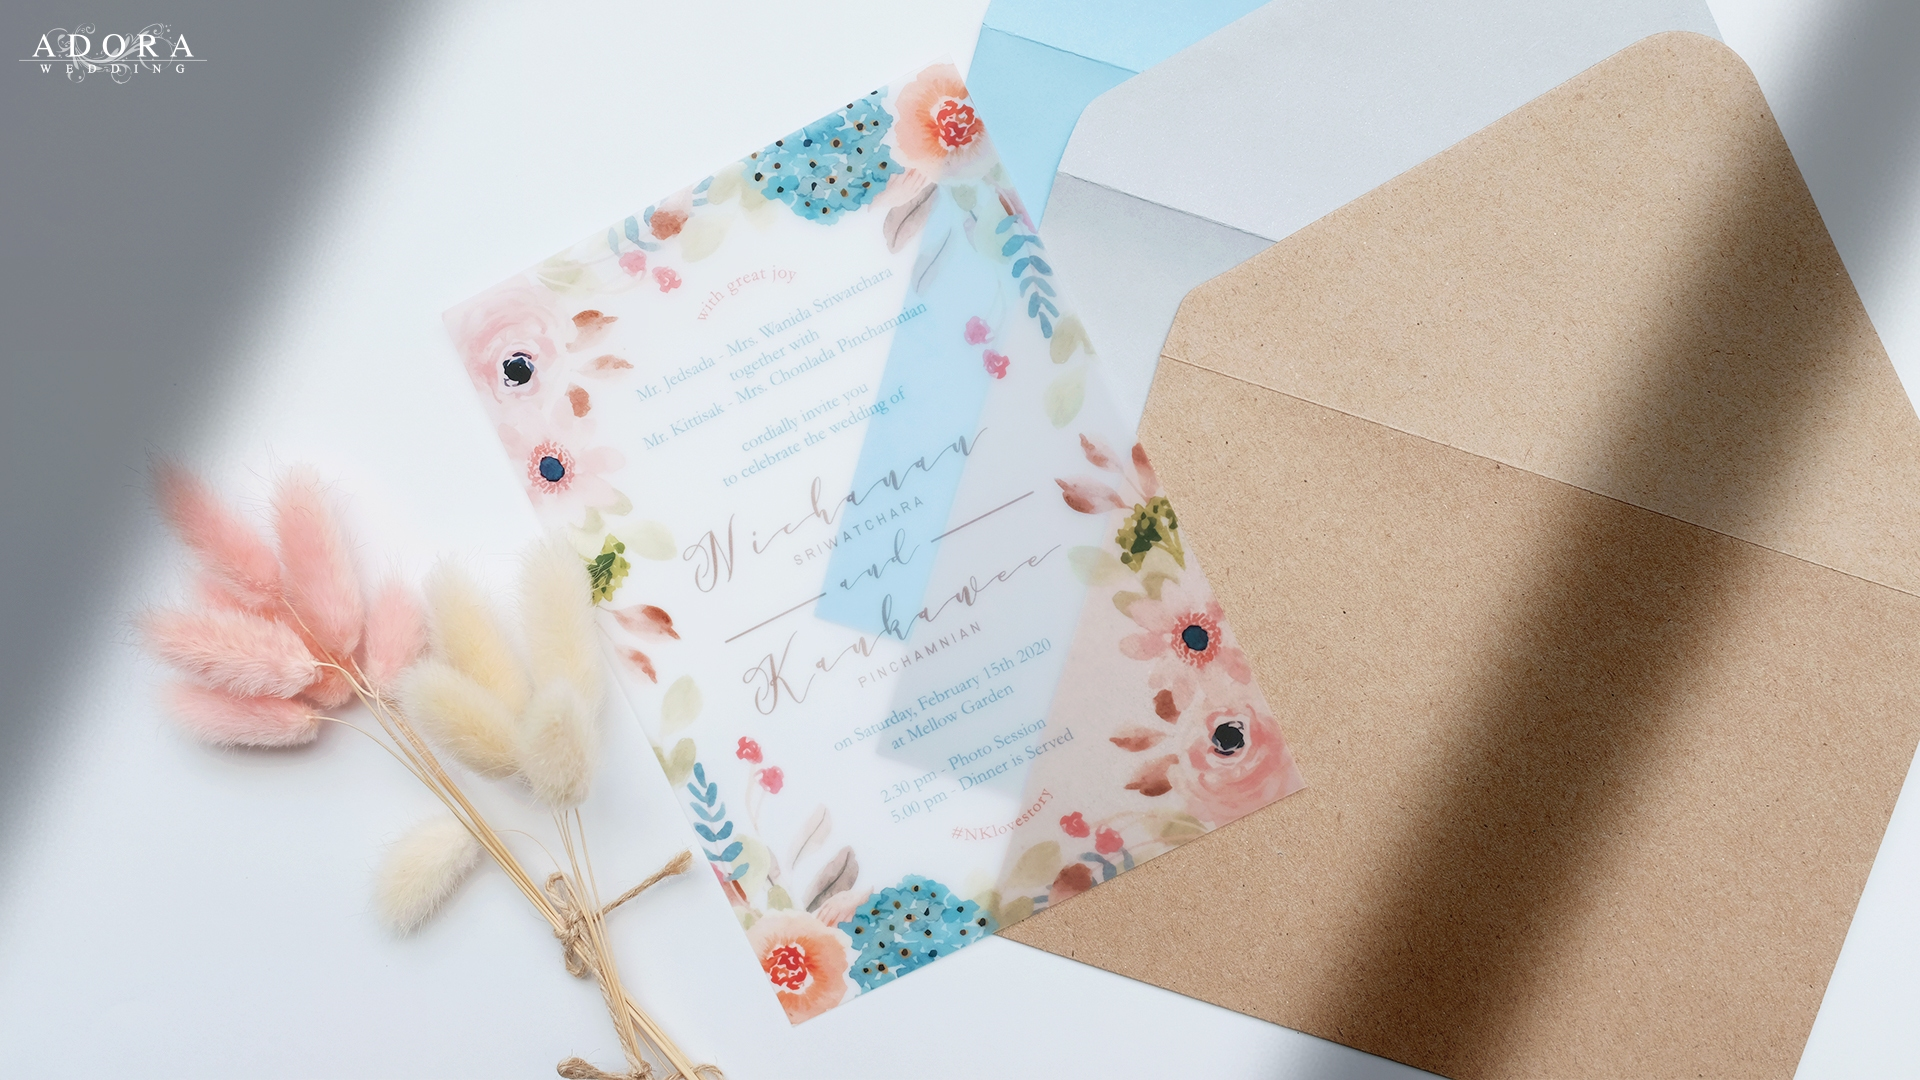 B120LM-wedding-card-1